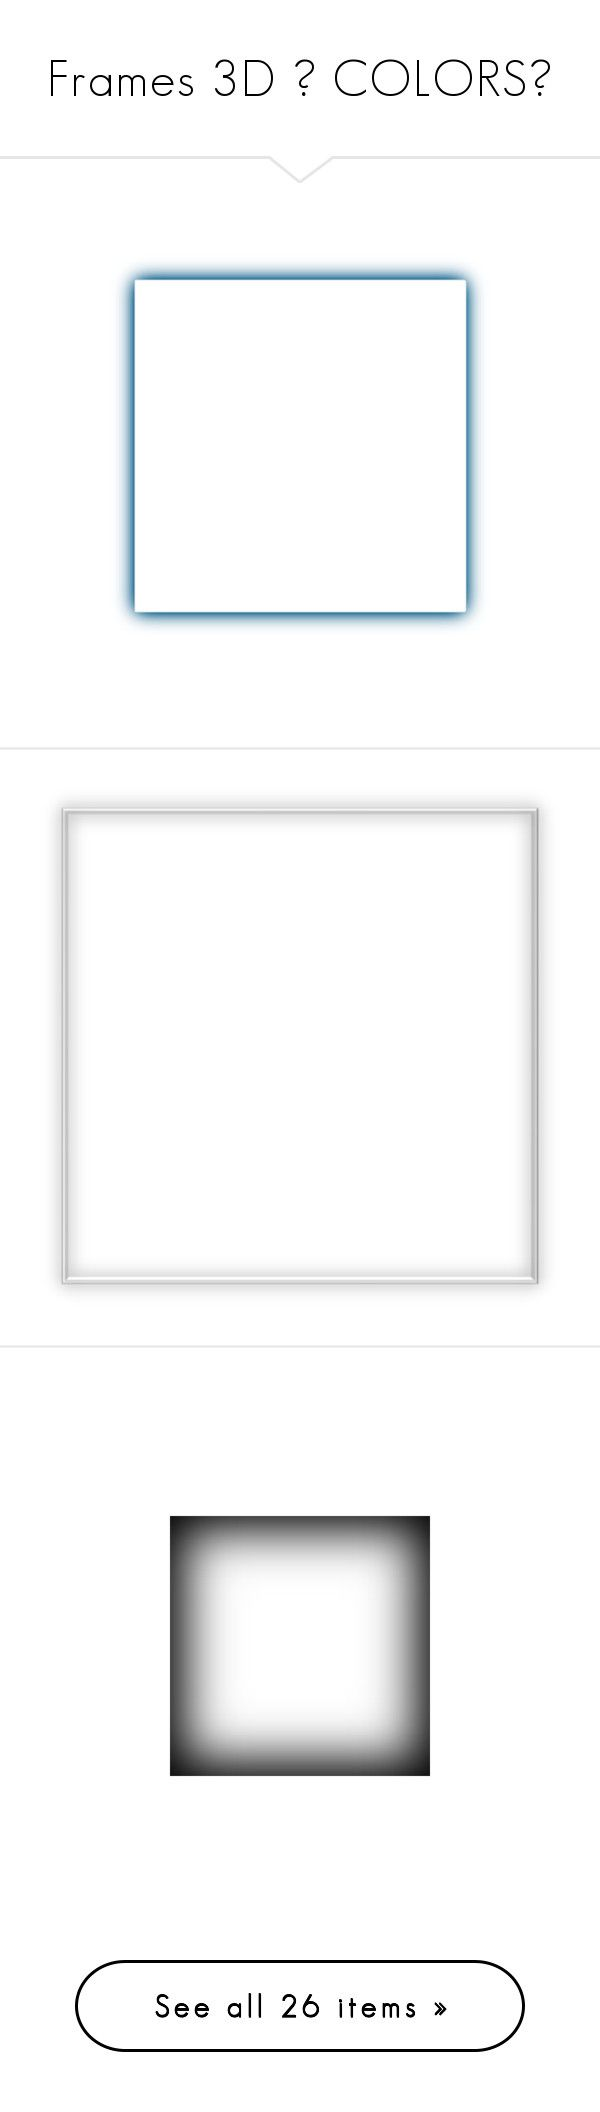 """""""Frames 3D 🔲 COLORS🔲"""" by izzystarsparkle ❤ liked on Polyvore featuring frames, backgrounds, borders, shadow, frames and borders, effects, filler, picture frame, embellishment and outline"""